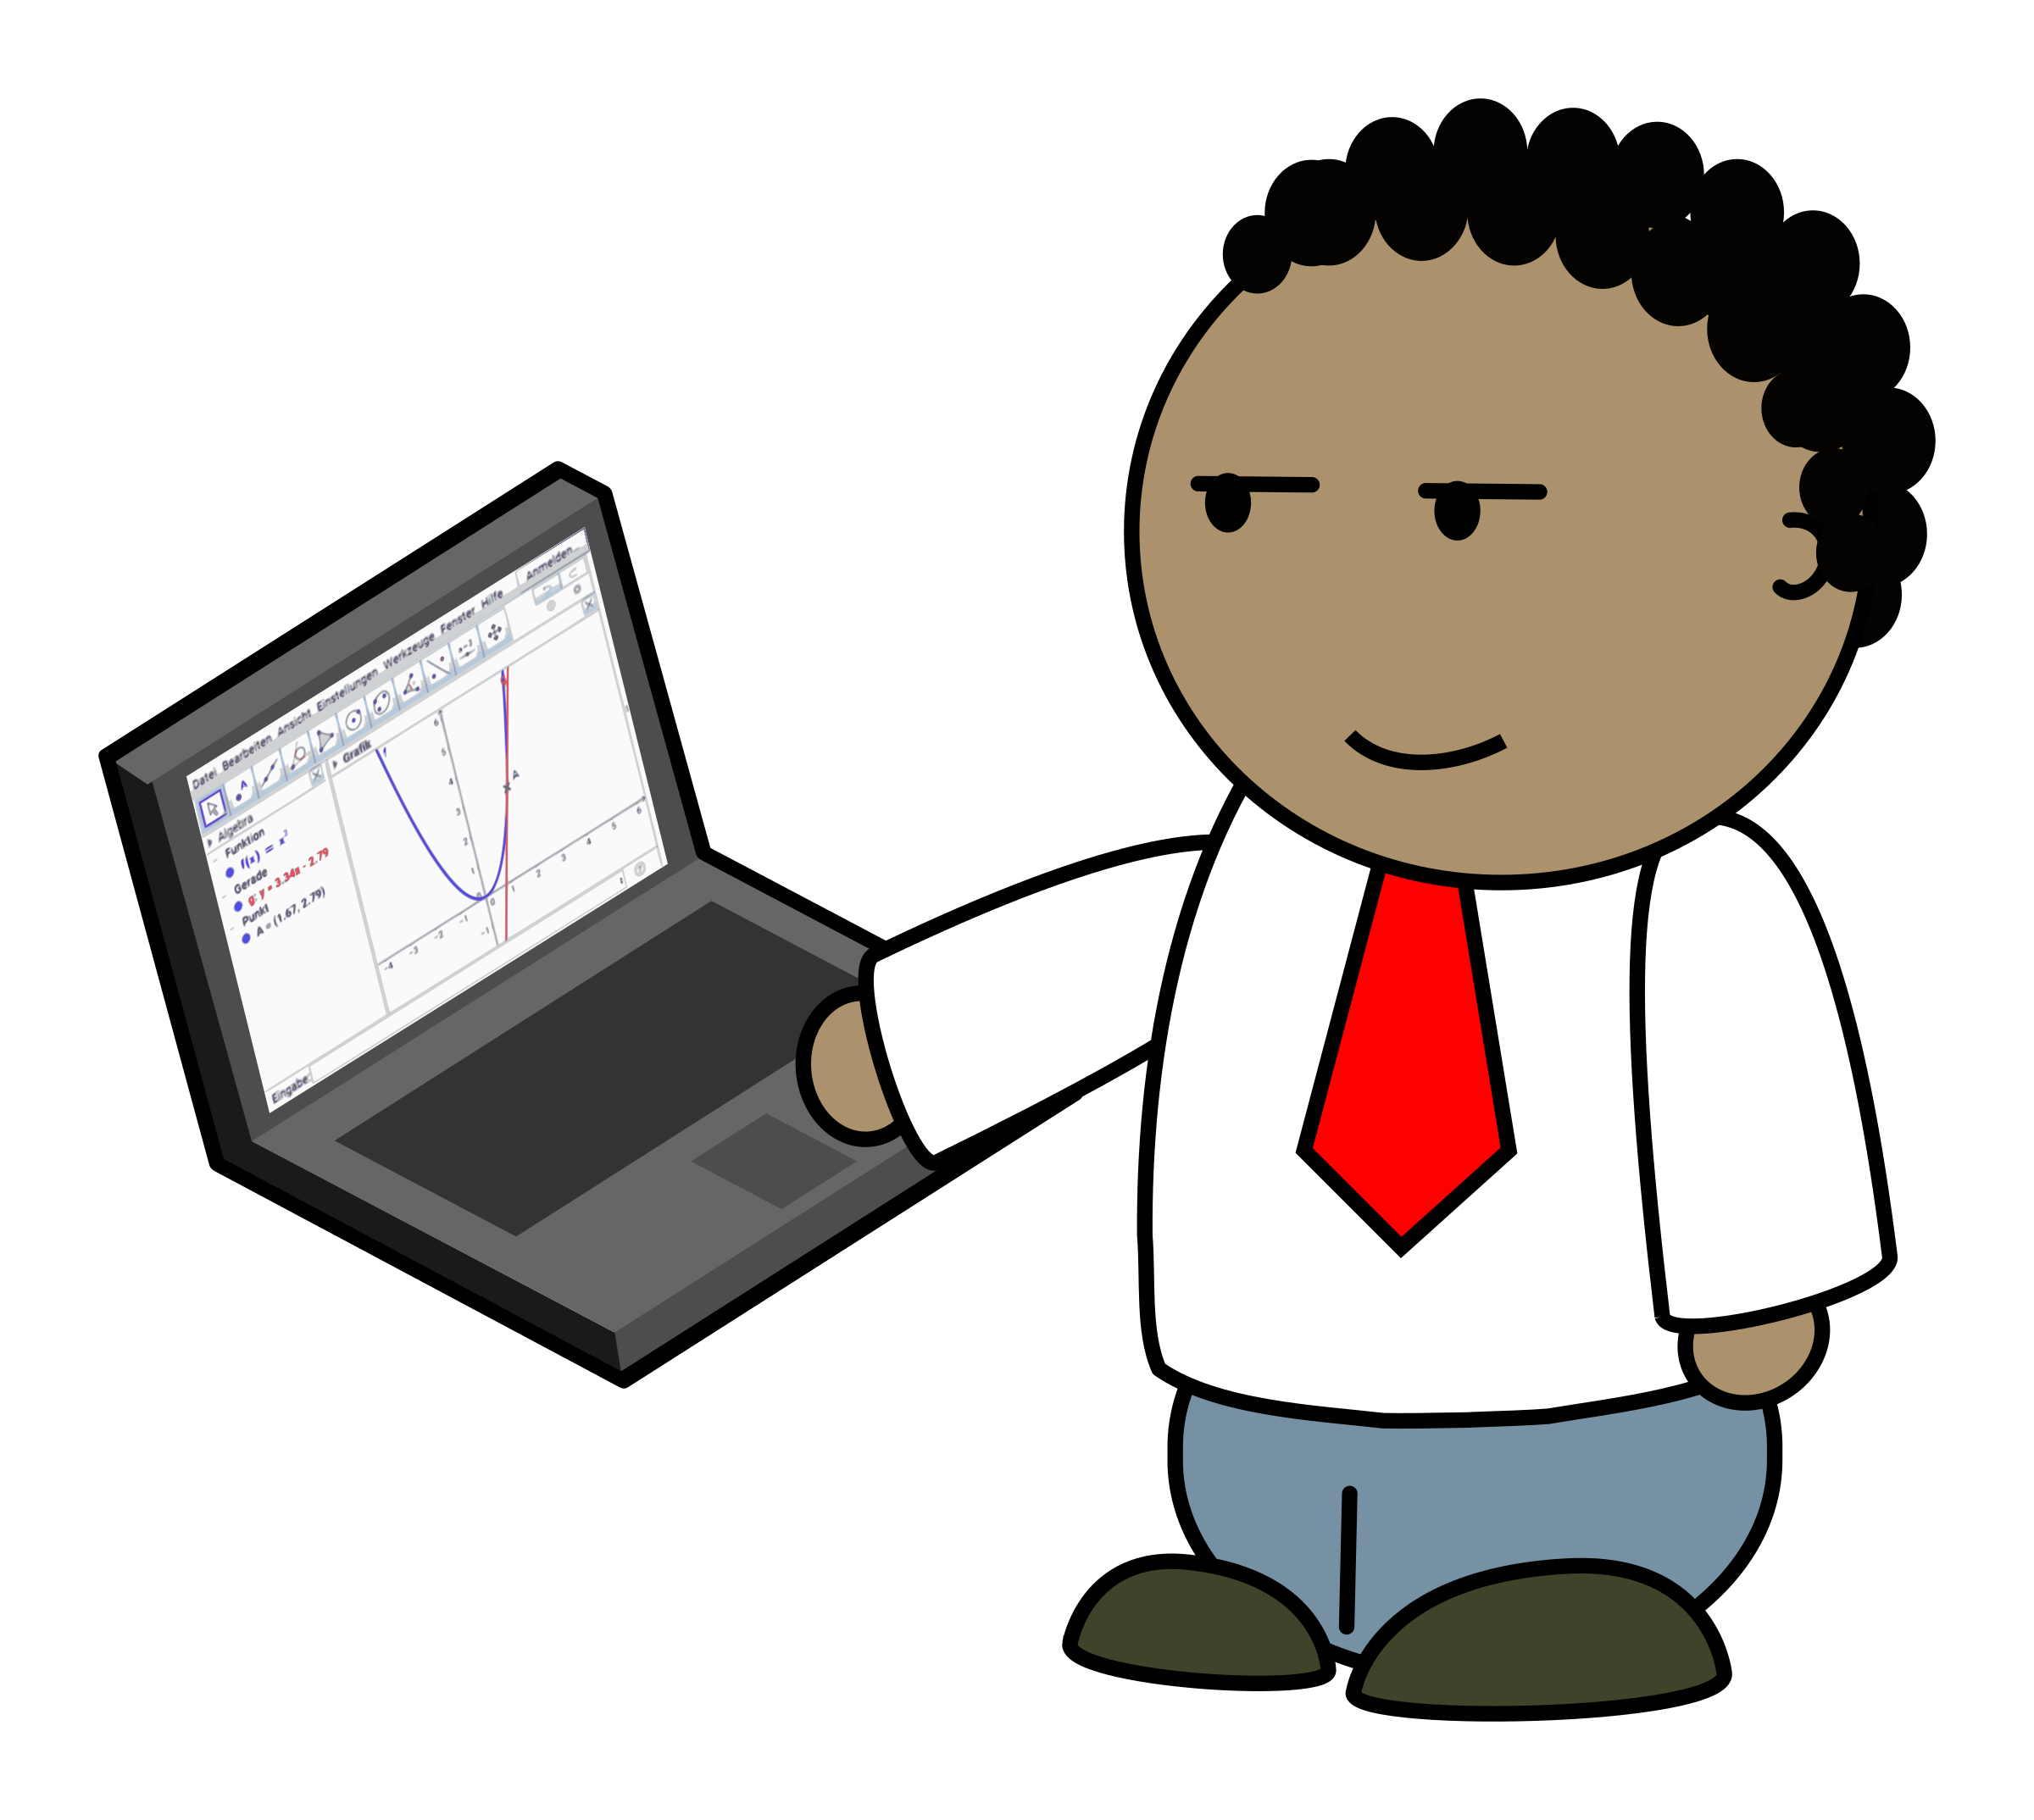 Person clipart technology. Geogebra for the teacher